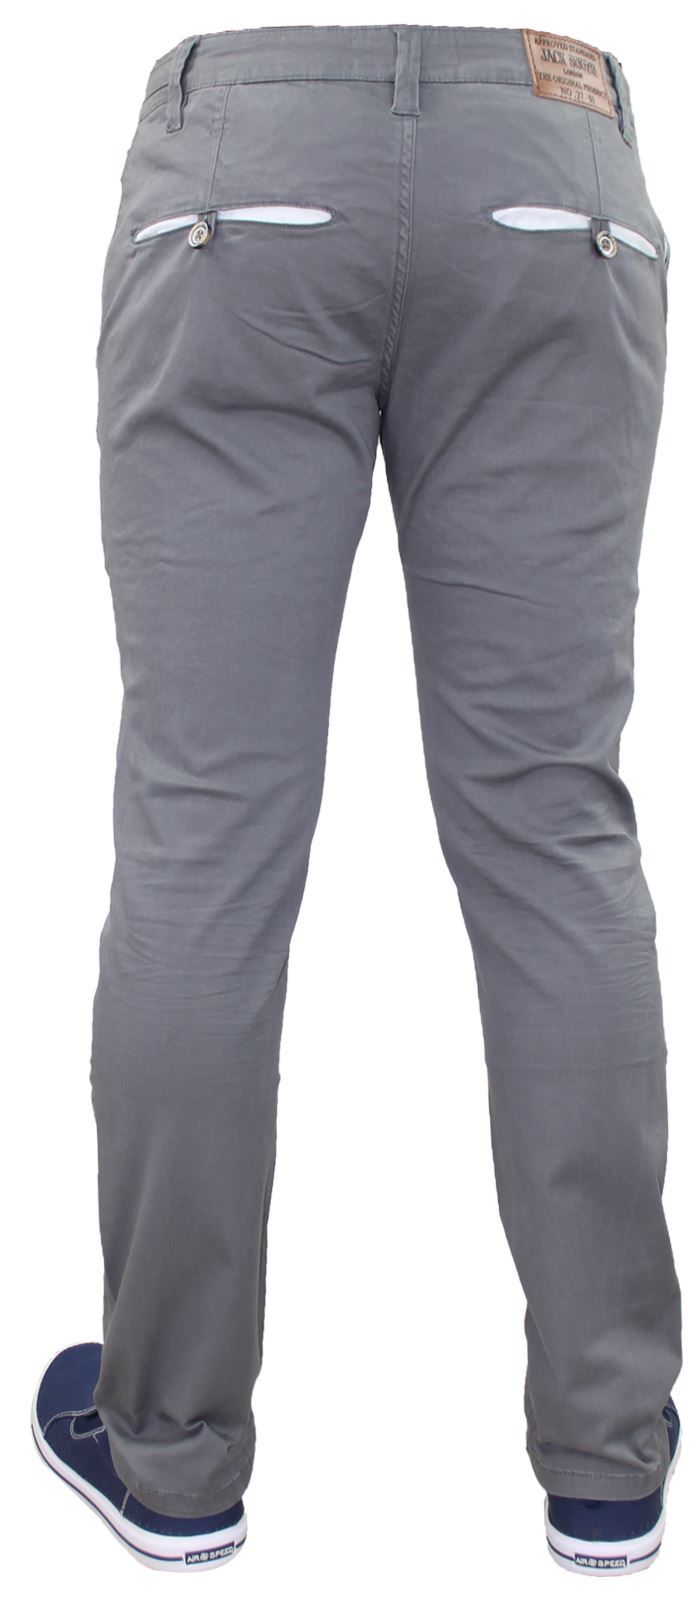 Men-Chinos-Trousers-Regular-Fit-Stretch-Cotton-Jeans-Pants-All-Waist-Sizes thumbnail 8